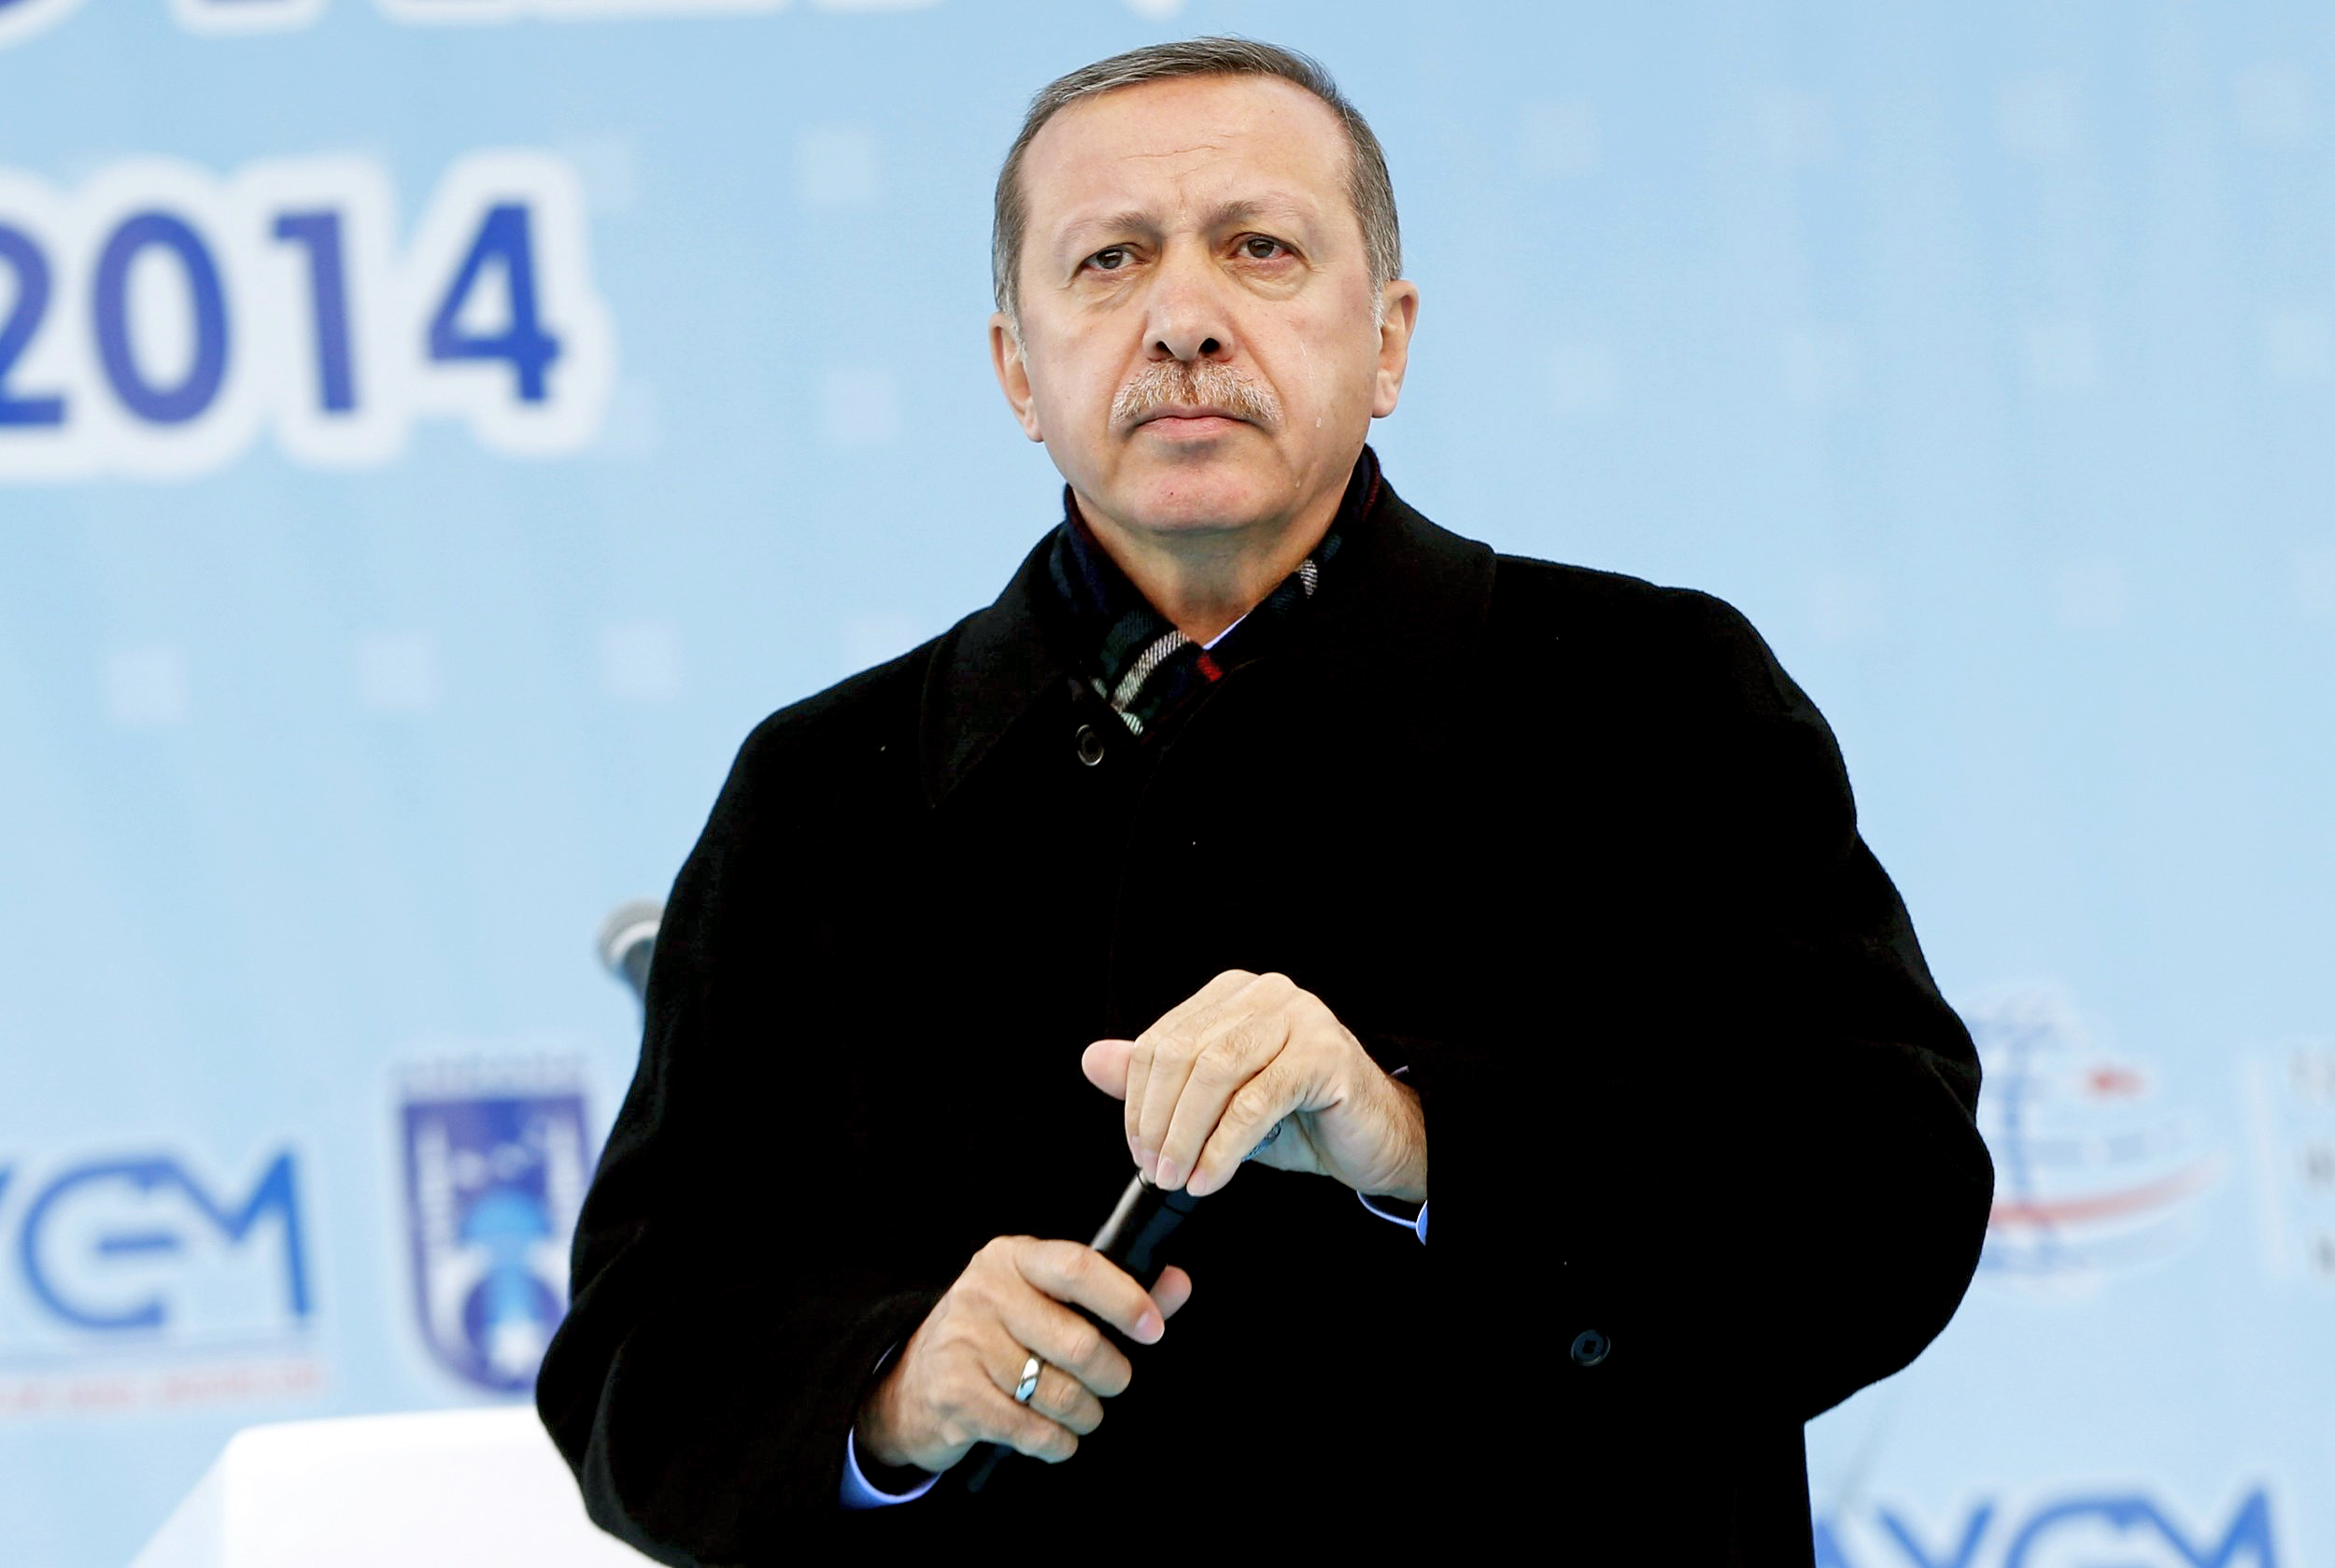 Turkey's Prime Minister Tayyip Erdogan addresses the crowd during an opening ceremony of a new metro line in Ankara on March 13, 2014.